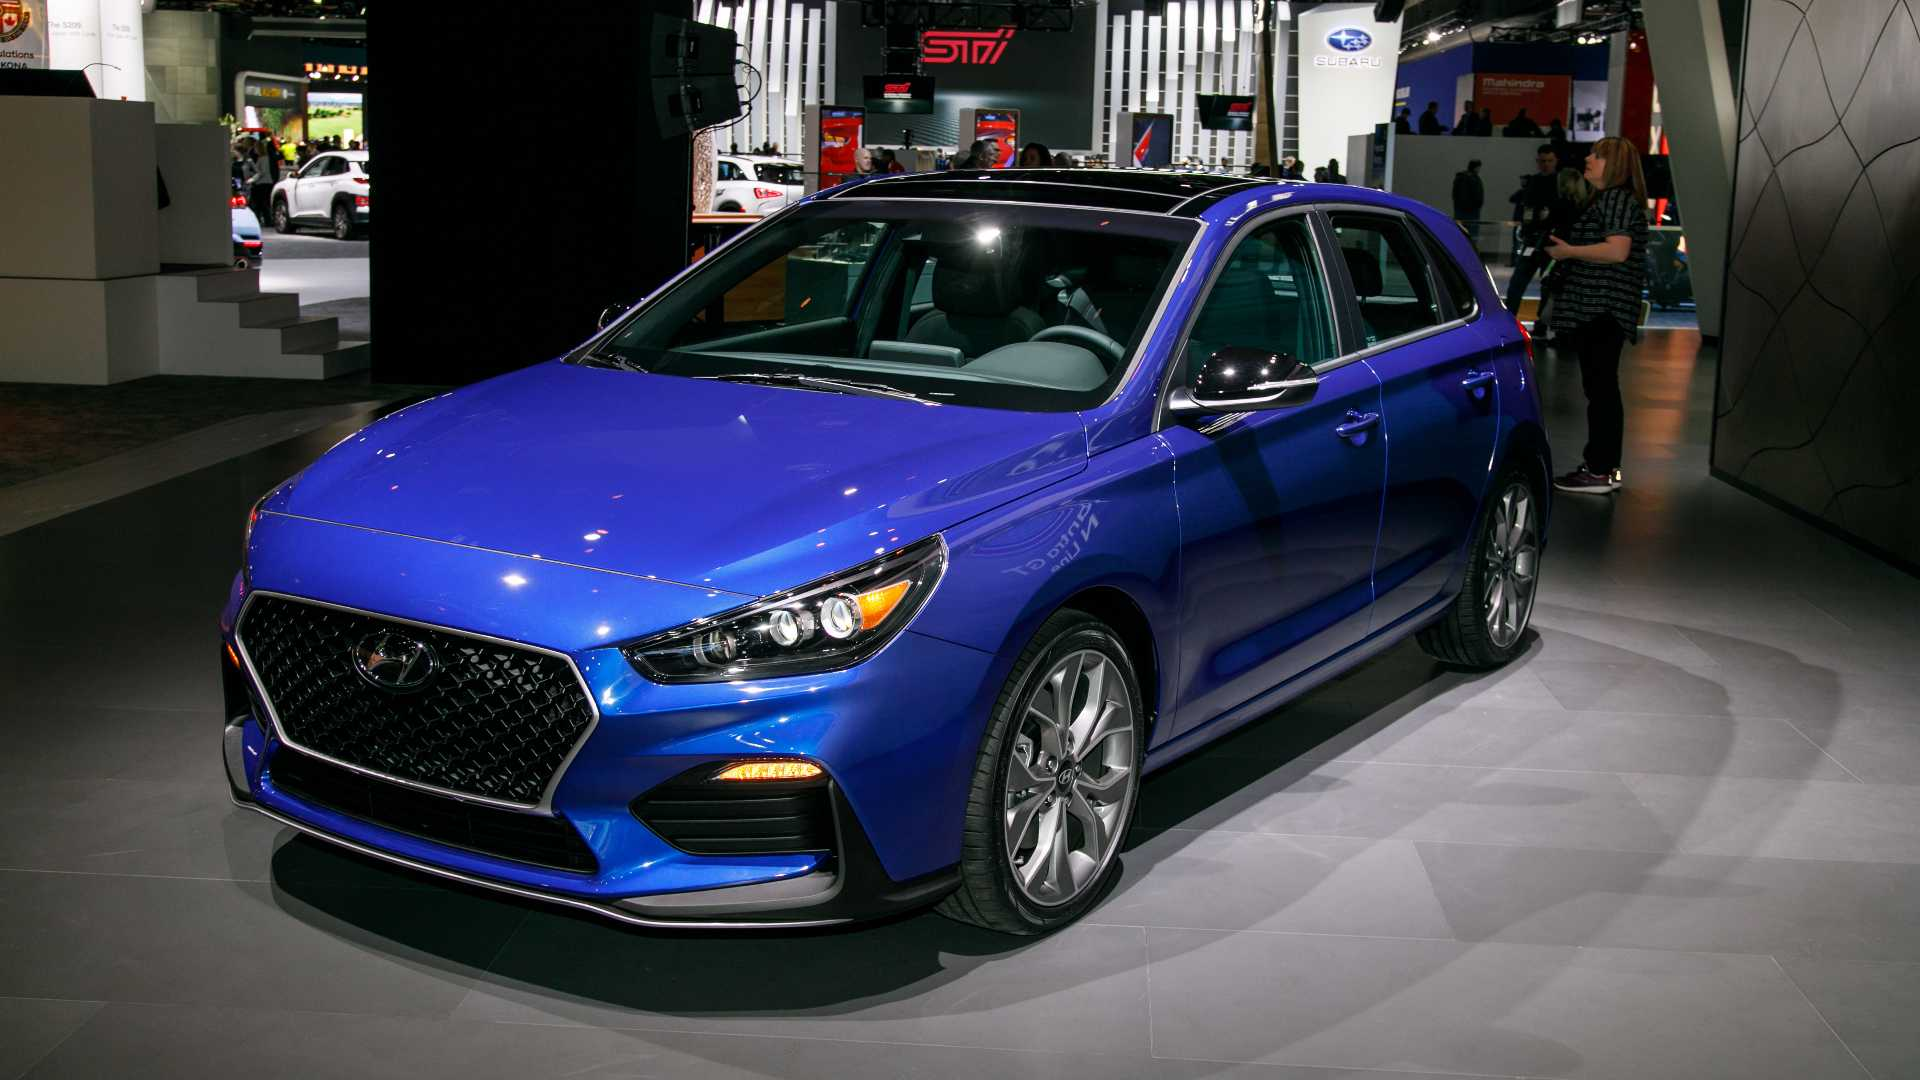 54 All New 2020 Hyundai Elantra Gt New Review with 2020 Hyundai Elantra Gt